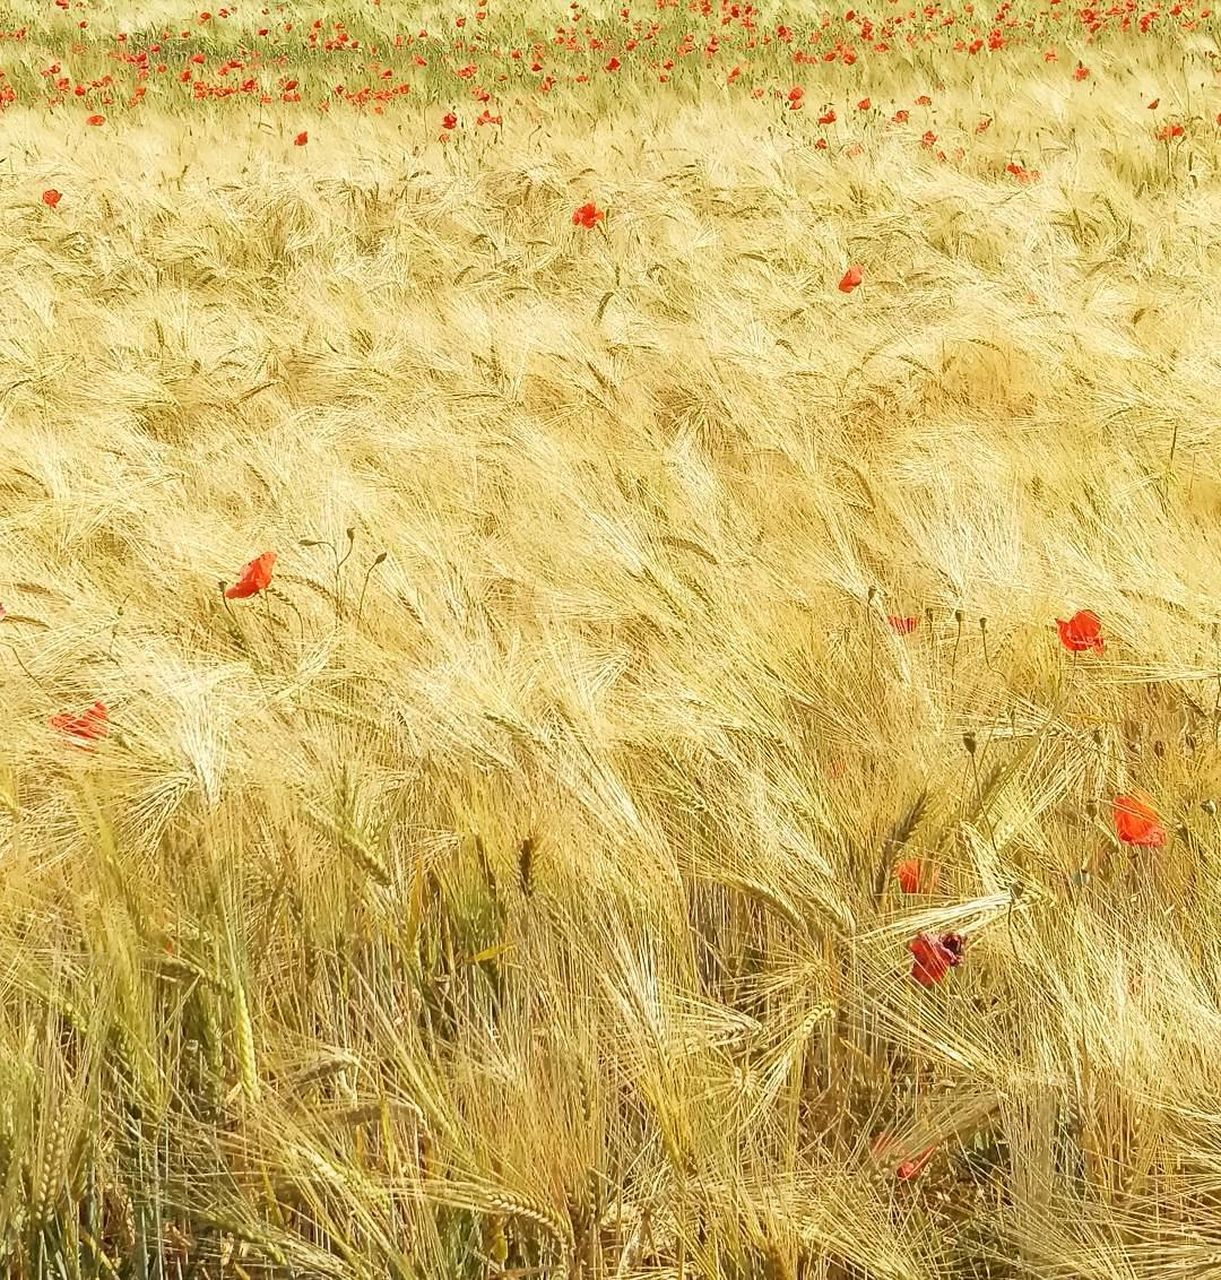 field, growth, nature, cereal plant, grass, plant, wheat, no people, day, beauty in nature, agriculture, outdoors, flower, backgrounds, red, rural scene, poppy, fragility, close-up, freshness